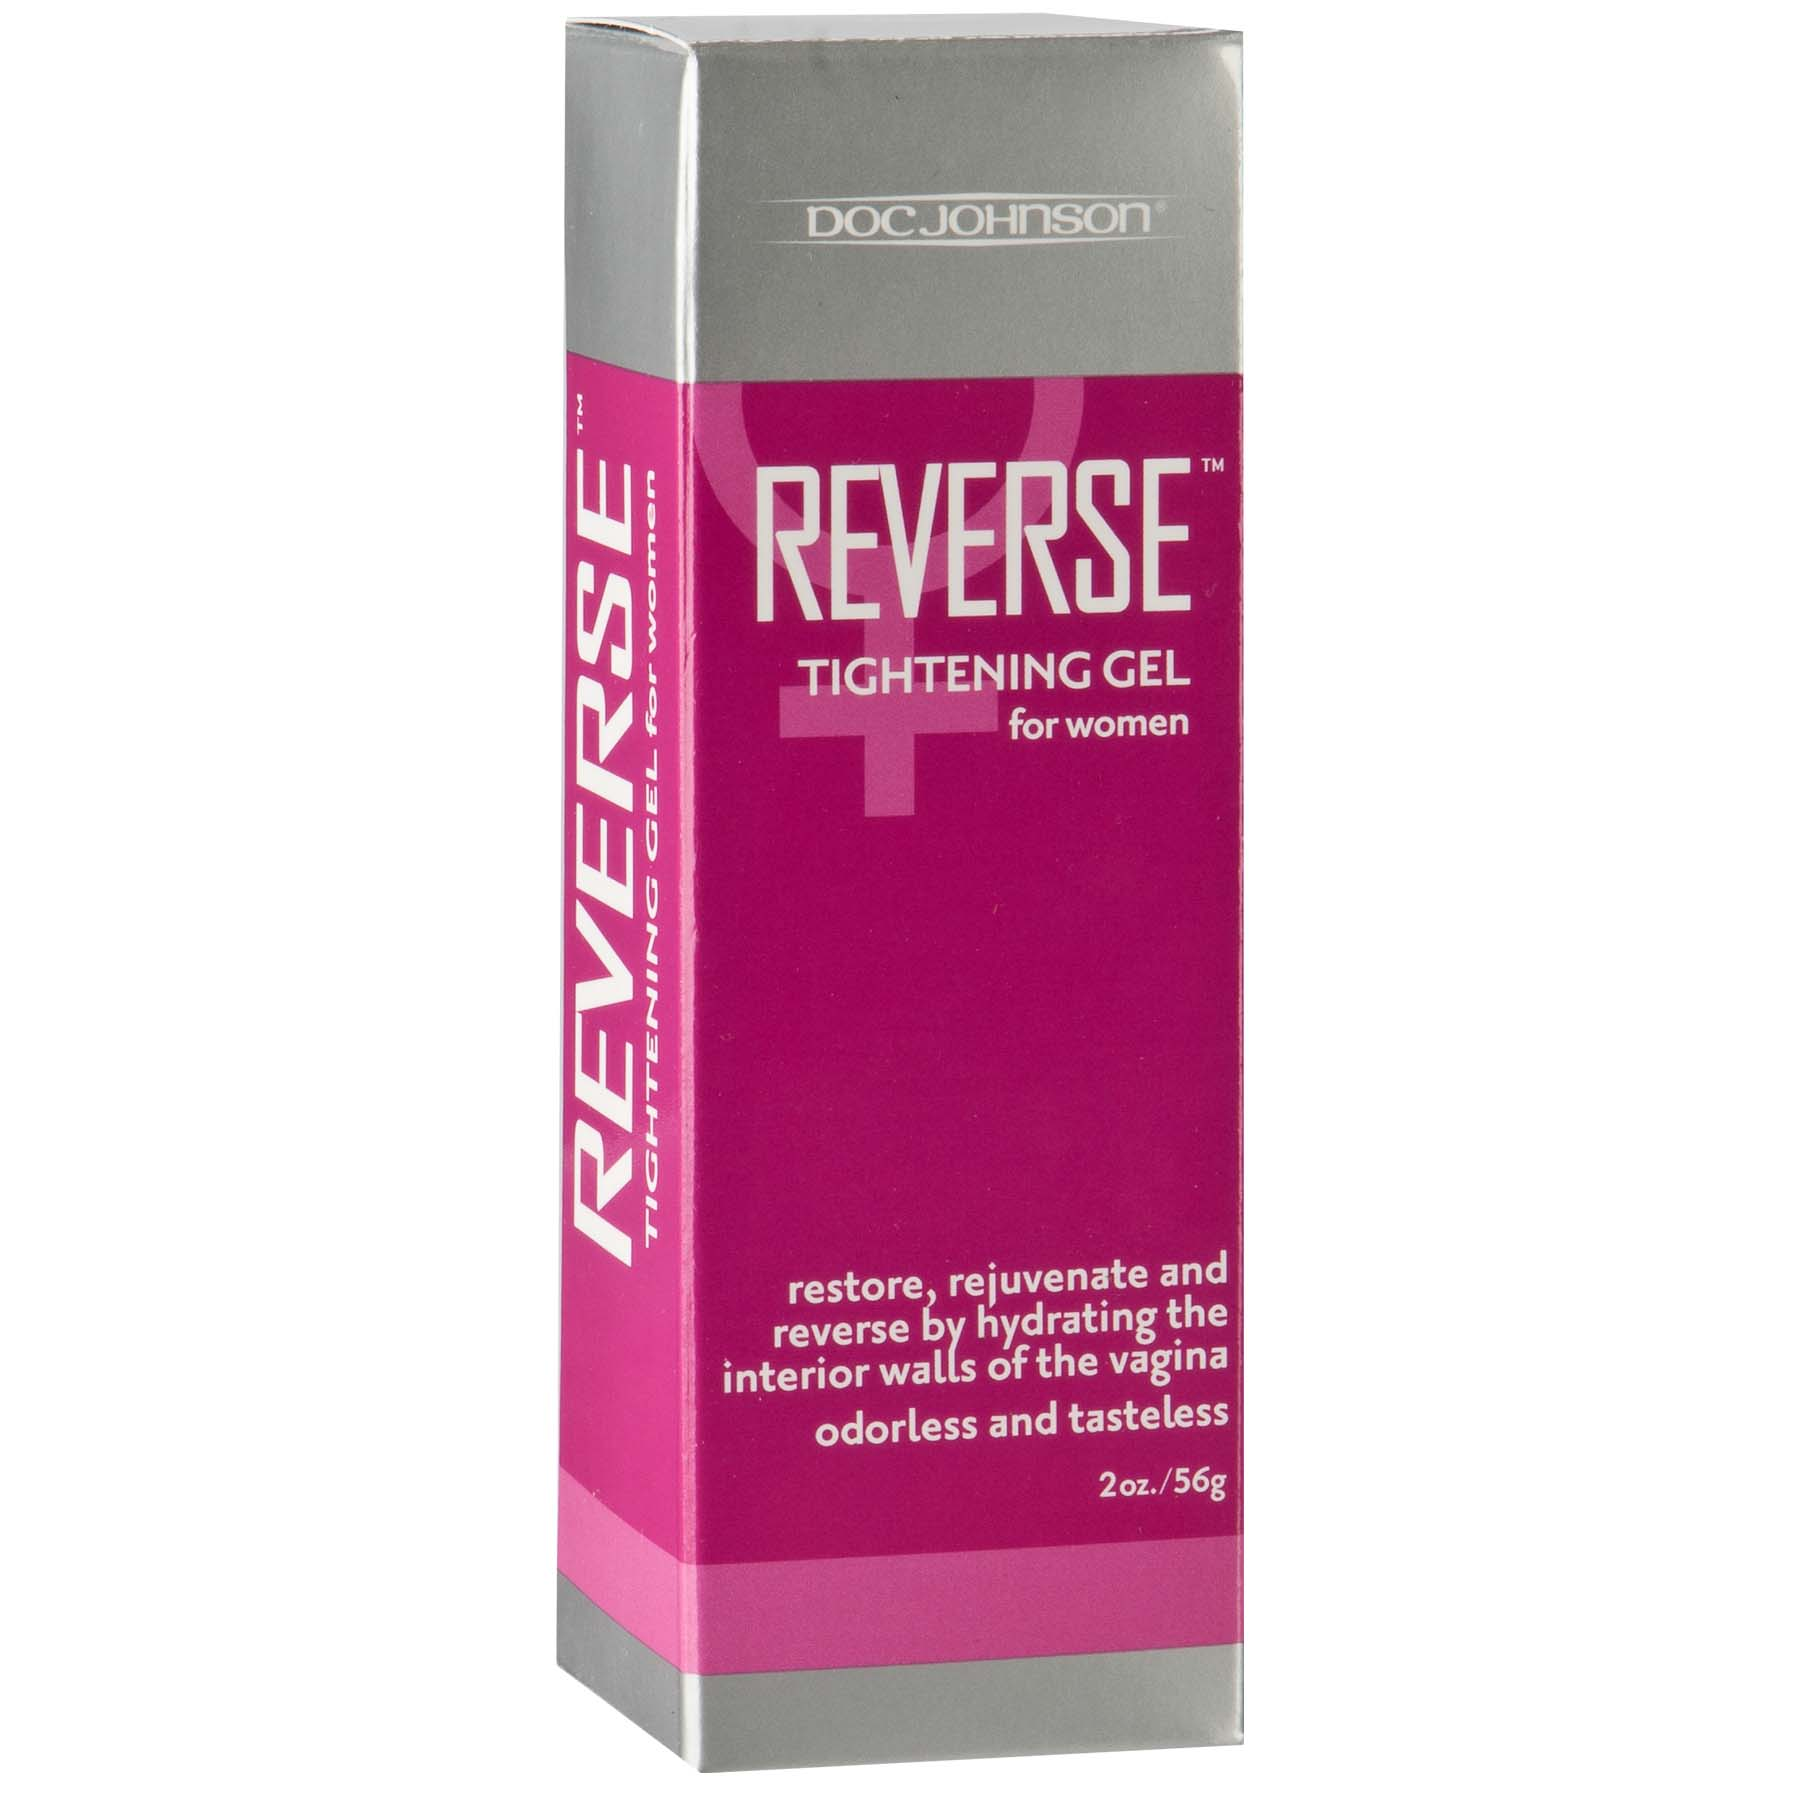 Reverse Tightening Gel for Women - 2 Oz. - Boxed HPPDJ1312-20